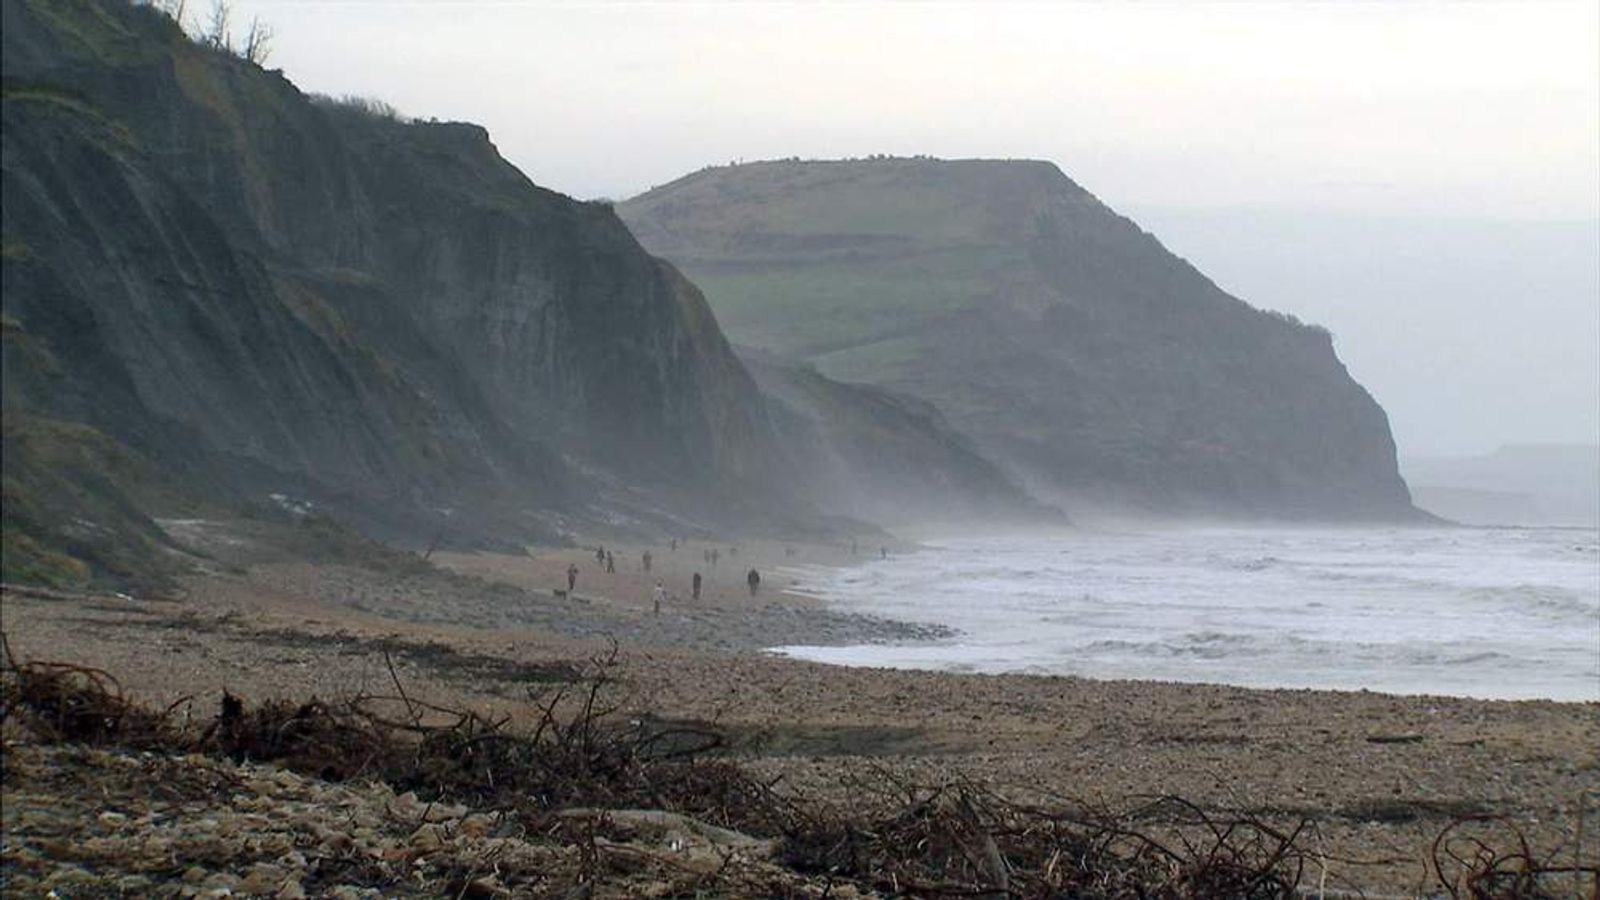 Cliffs on Dorset coast